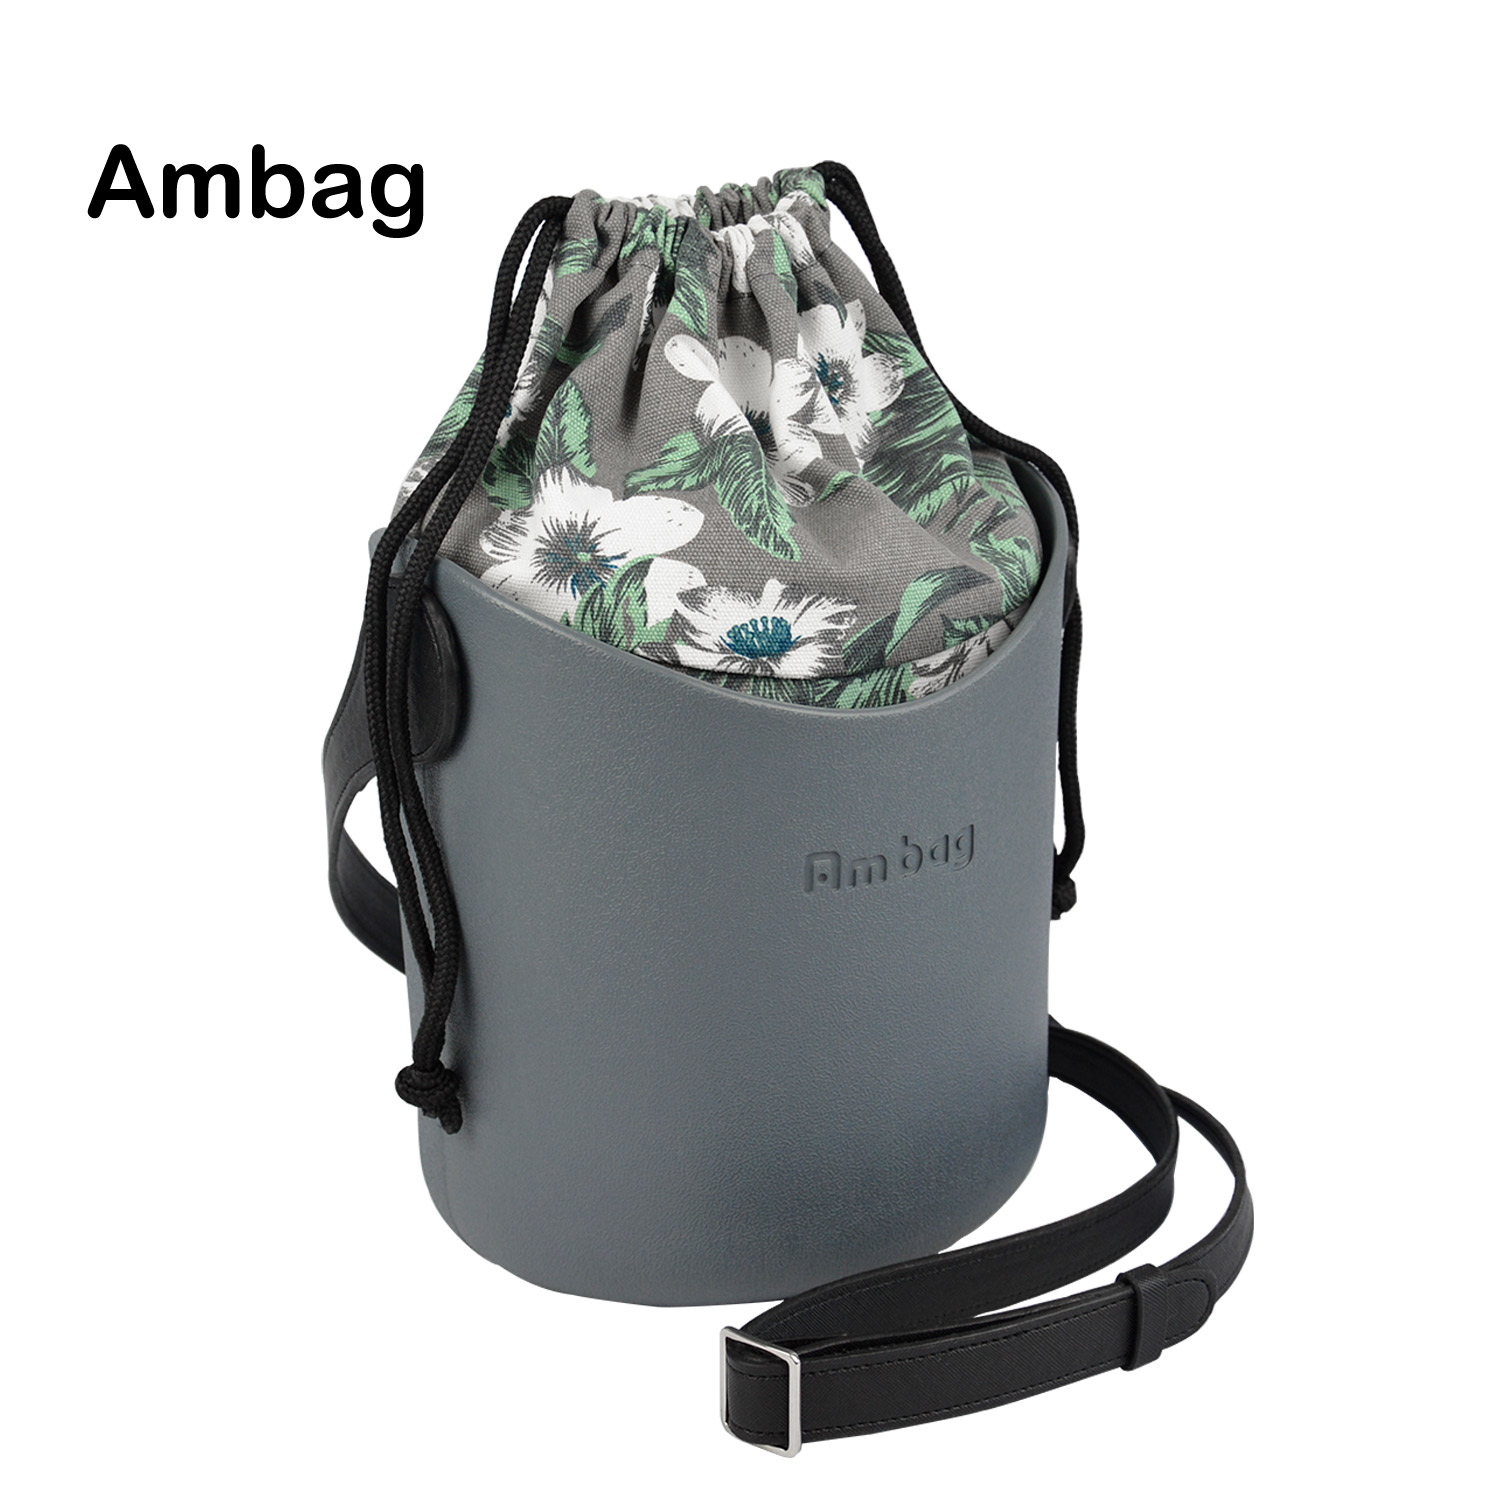 2019 New Obag Style Ambag EVA O bag Basket Obag Style Basket with Handles Straps Canvas